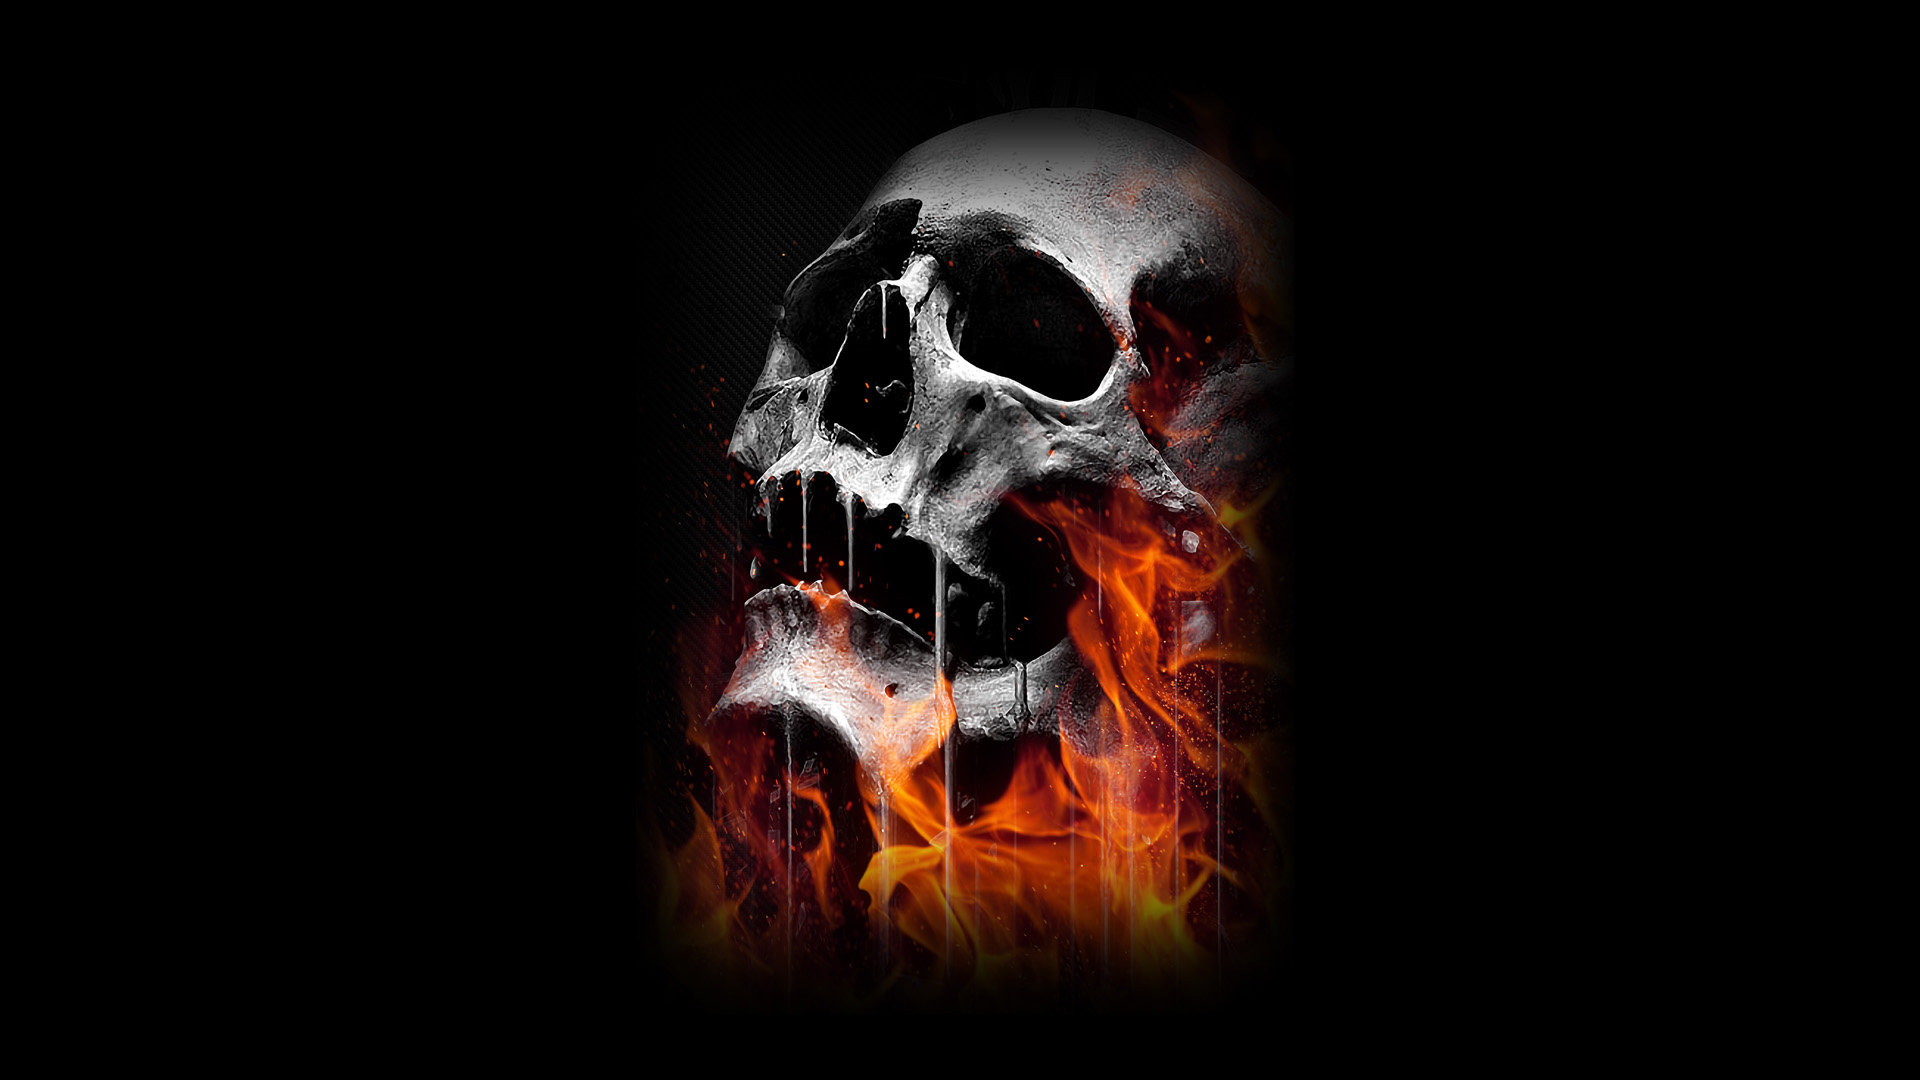 Skull Wallpapers 1920x1080 Full Hd 1080p Desktop Backgrounds